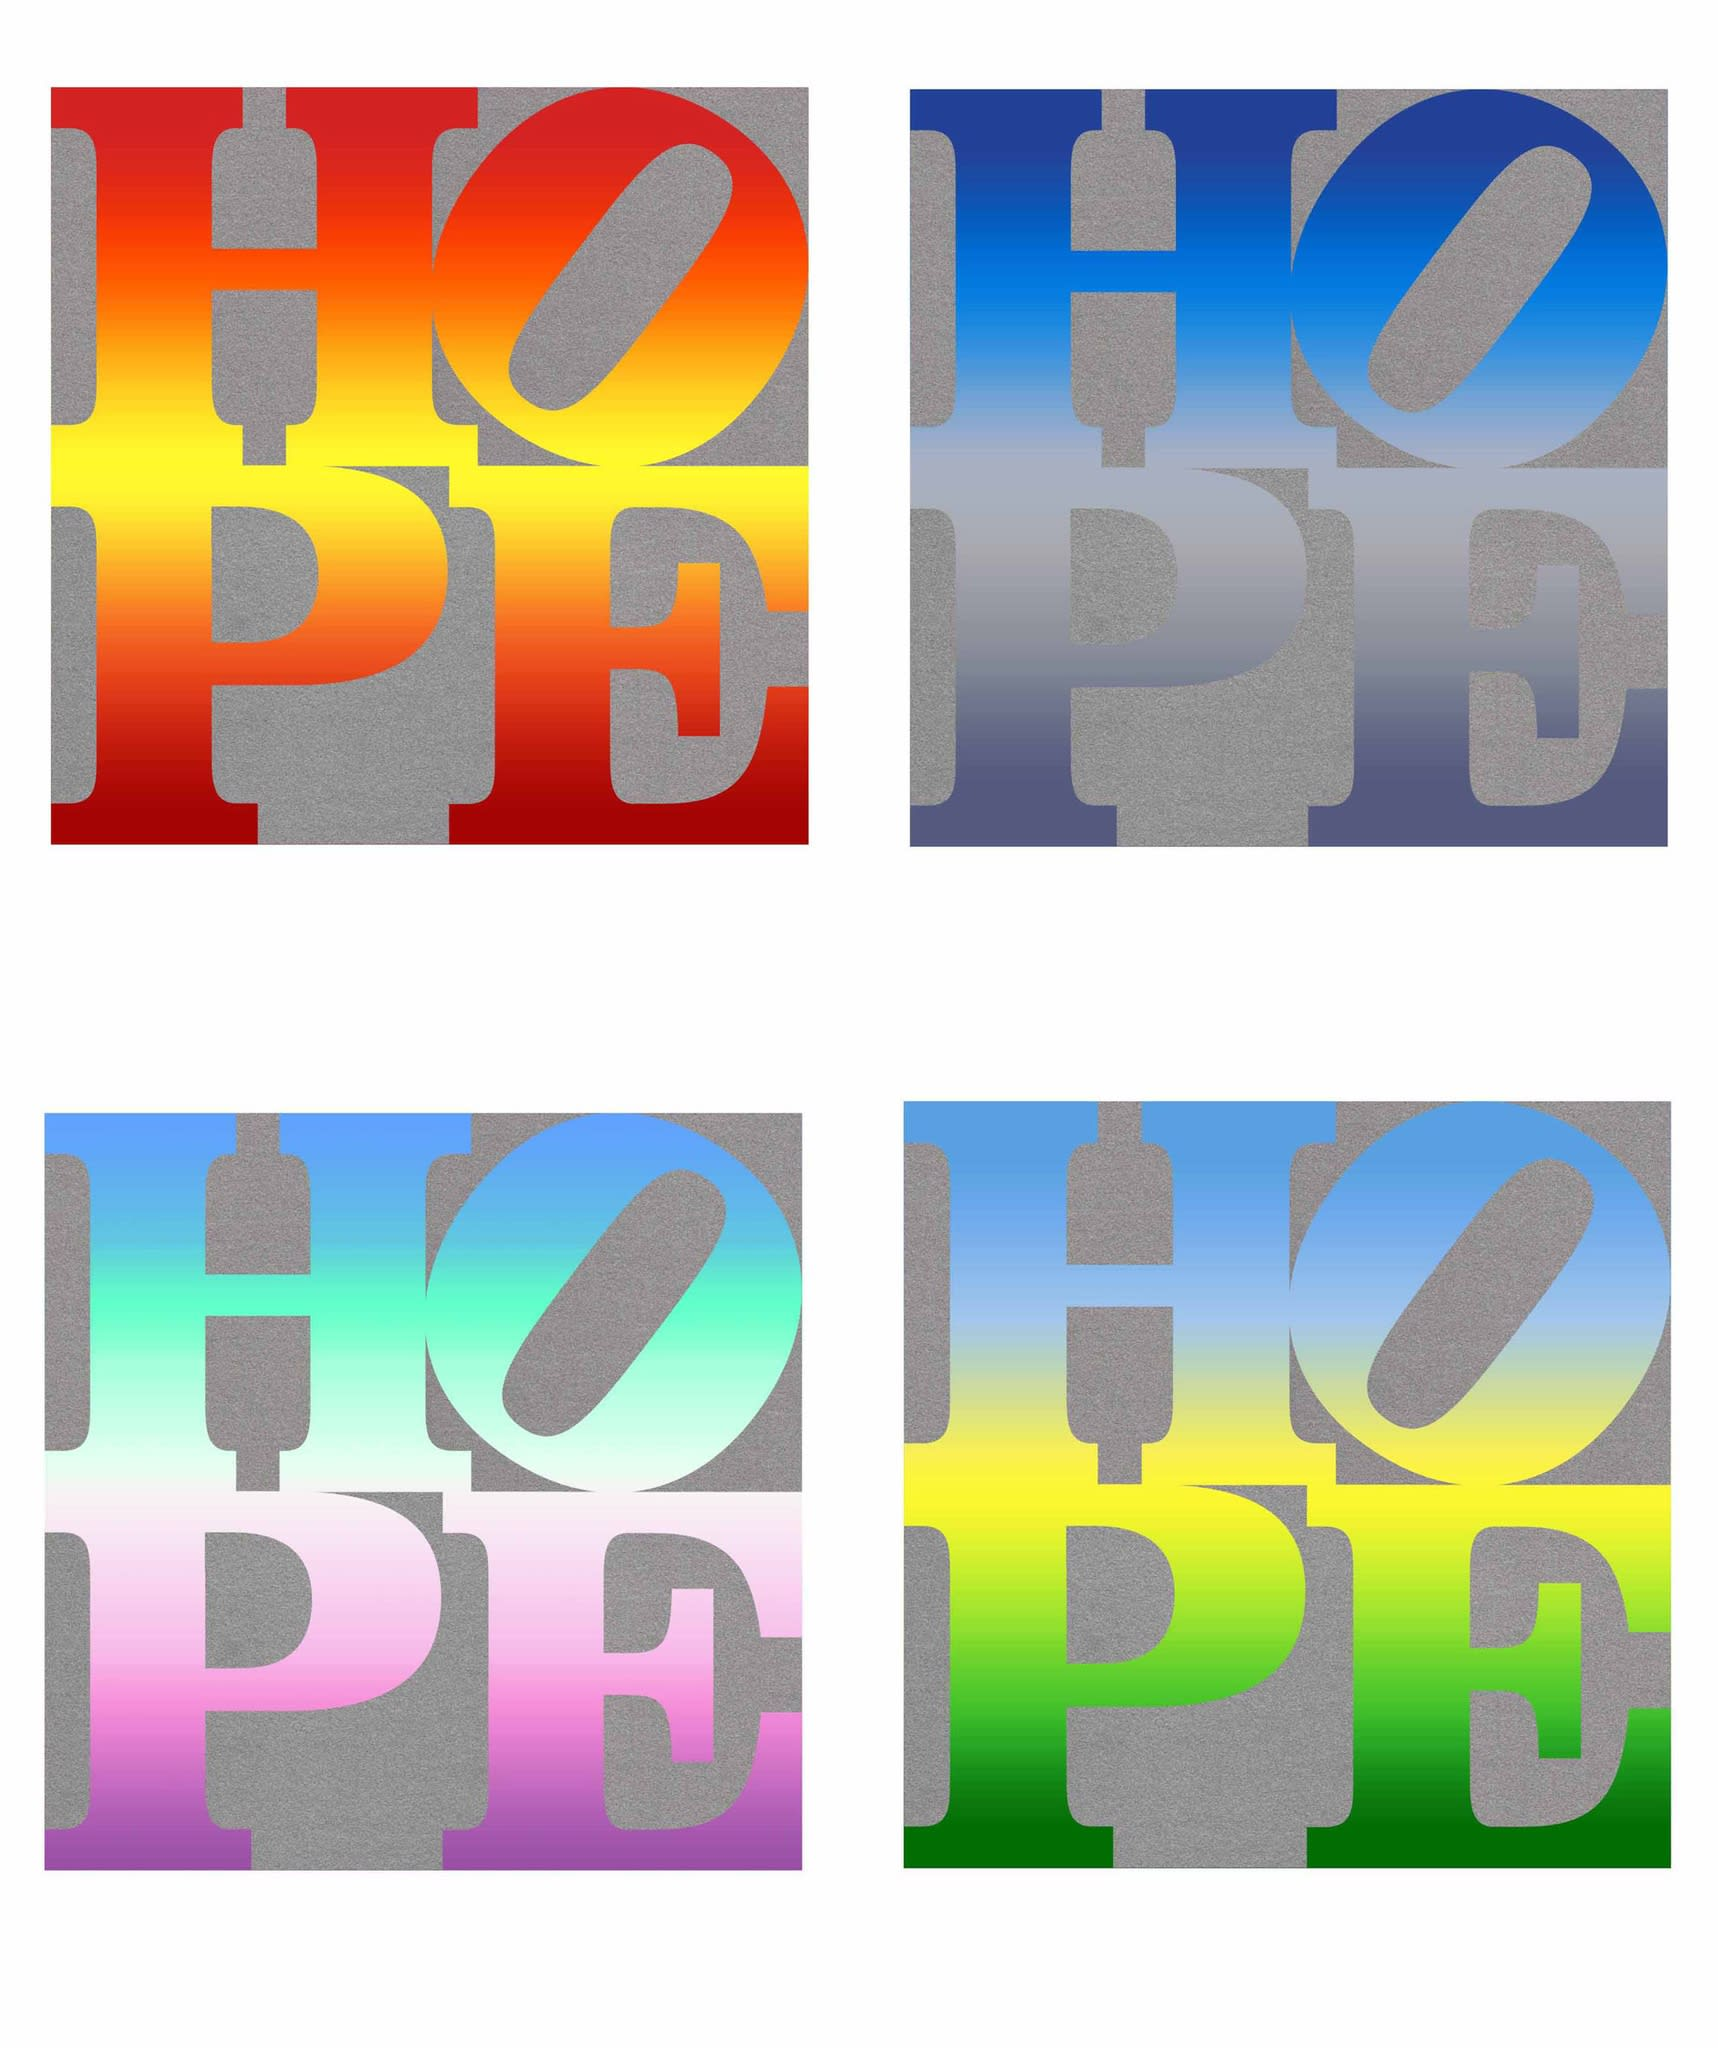 Four Seasons of Hope by Robert Indiana